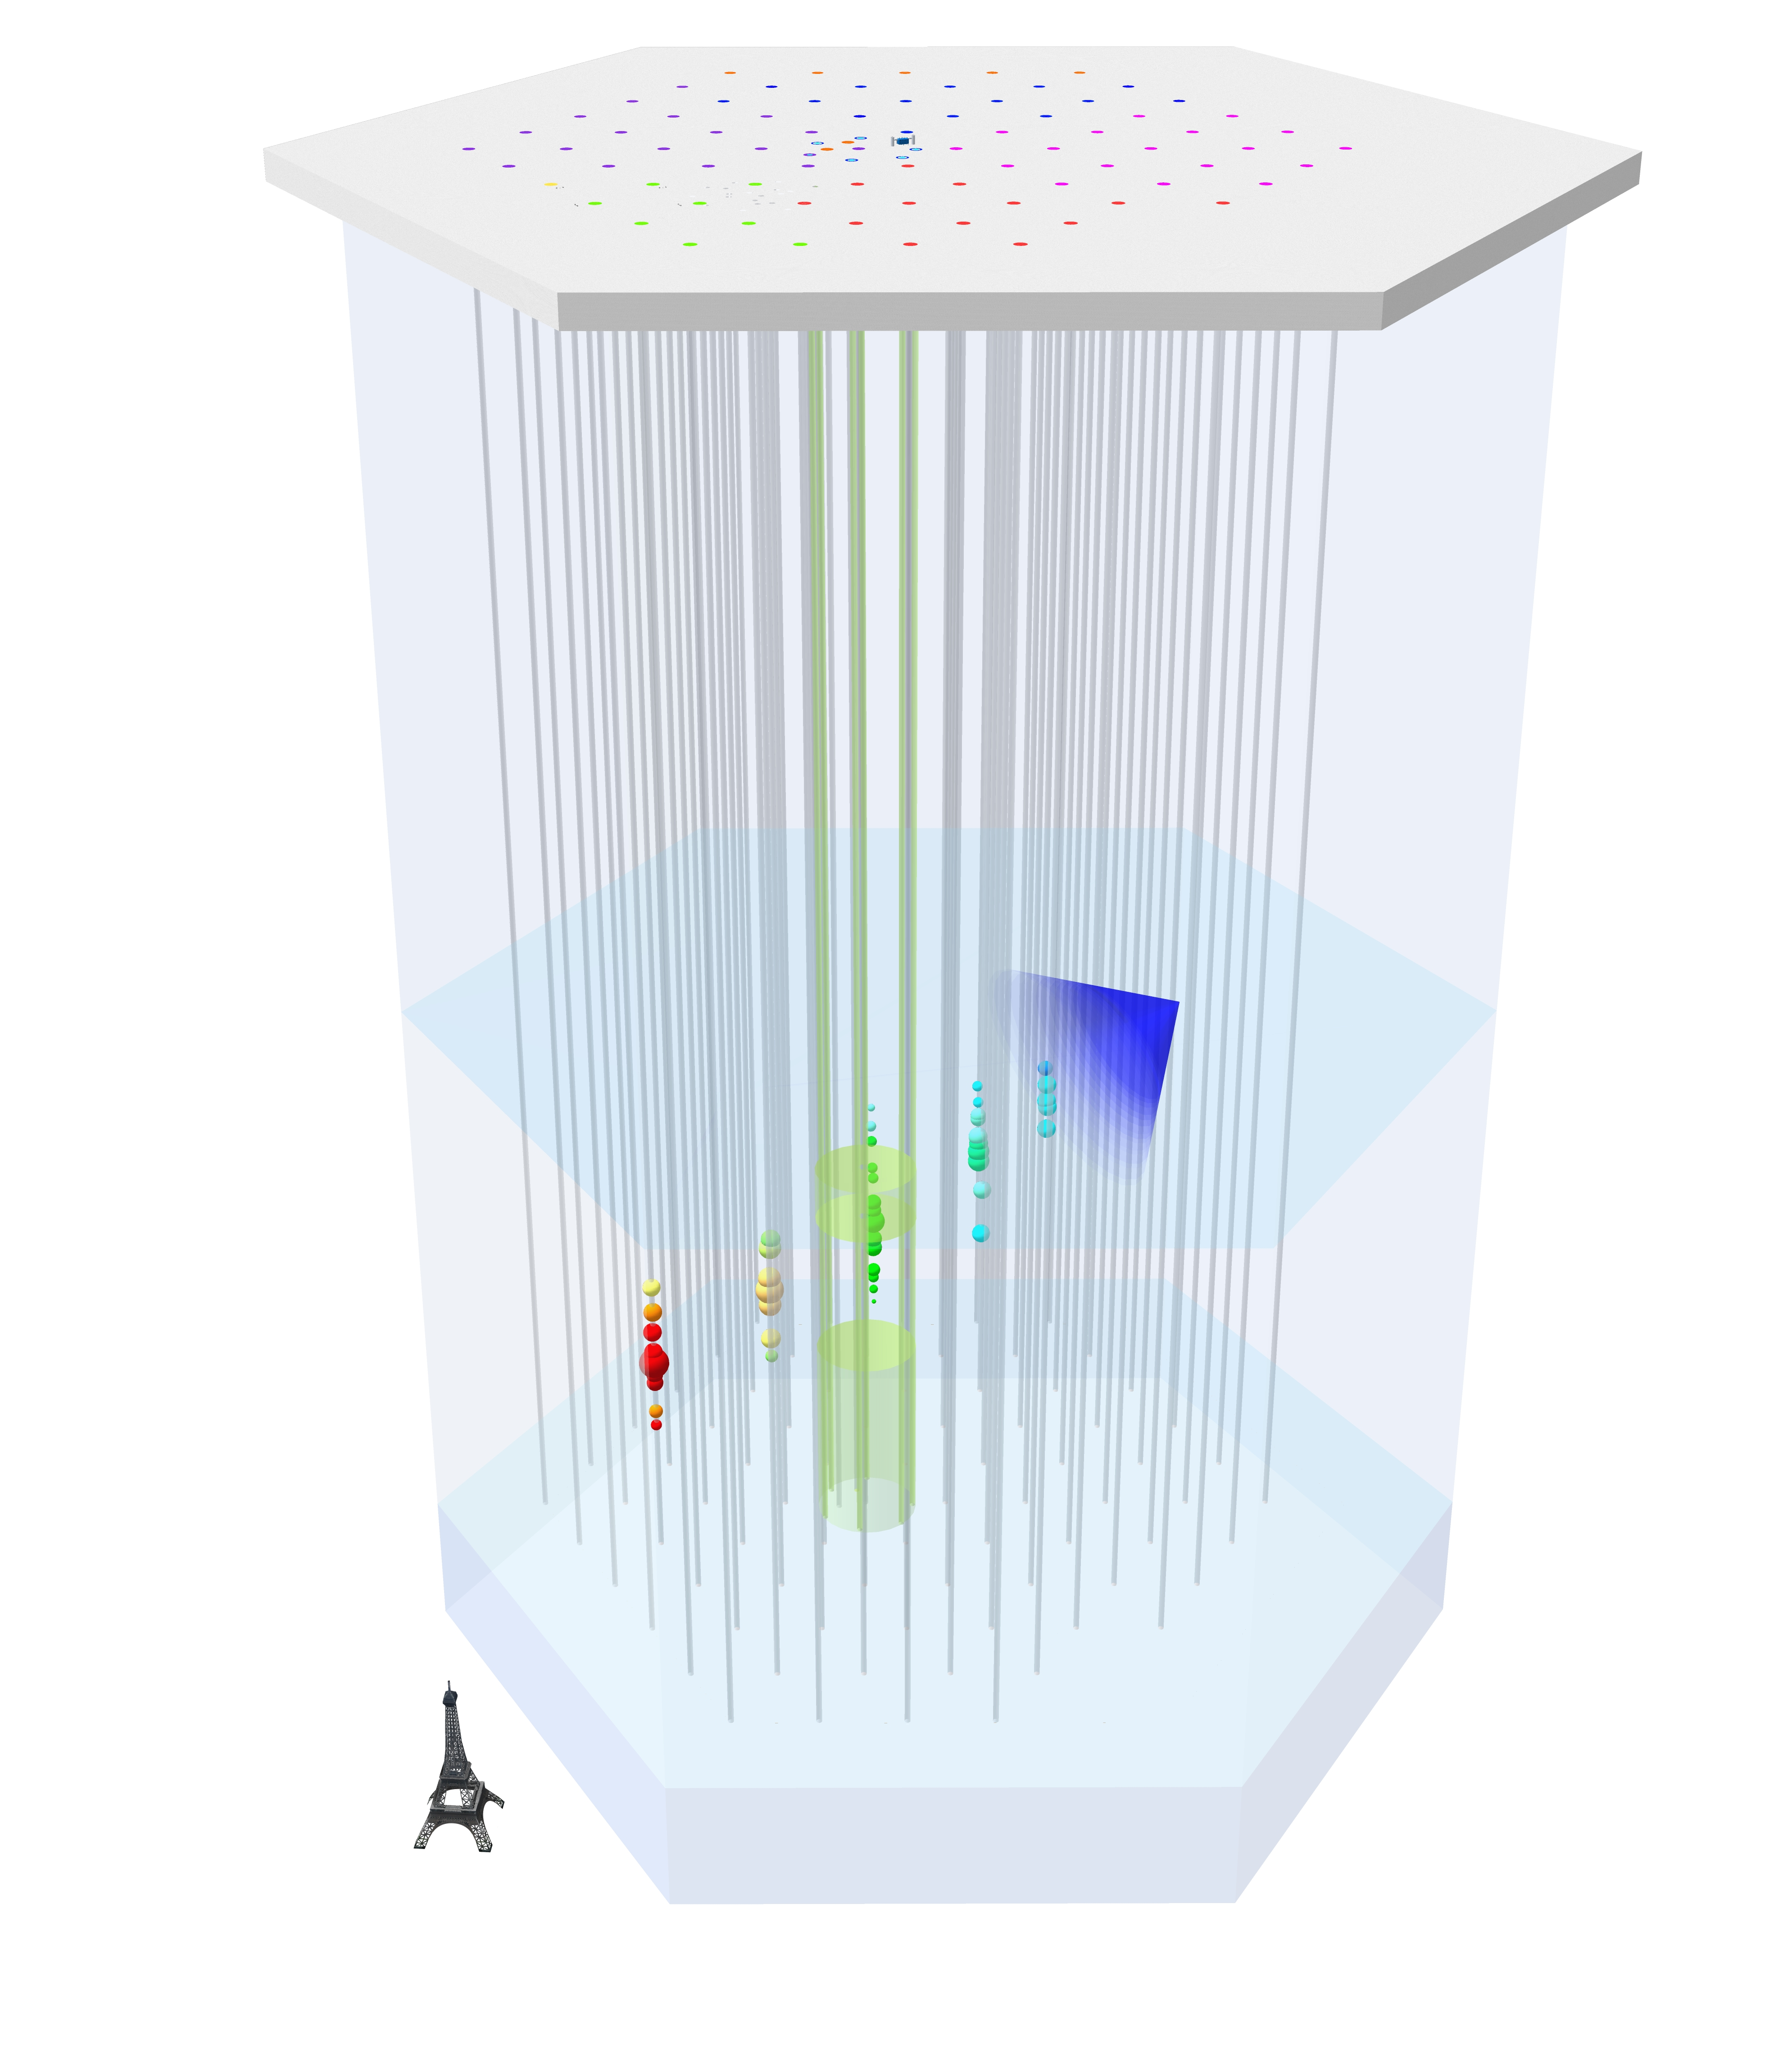 Schematic view of a neutrino detected in IceCube